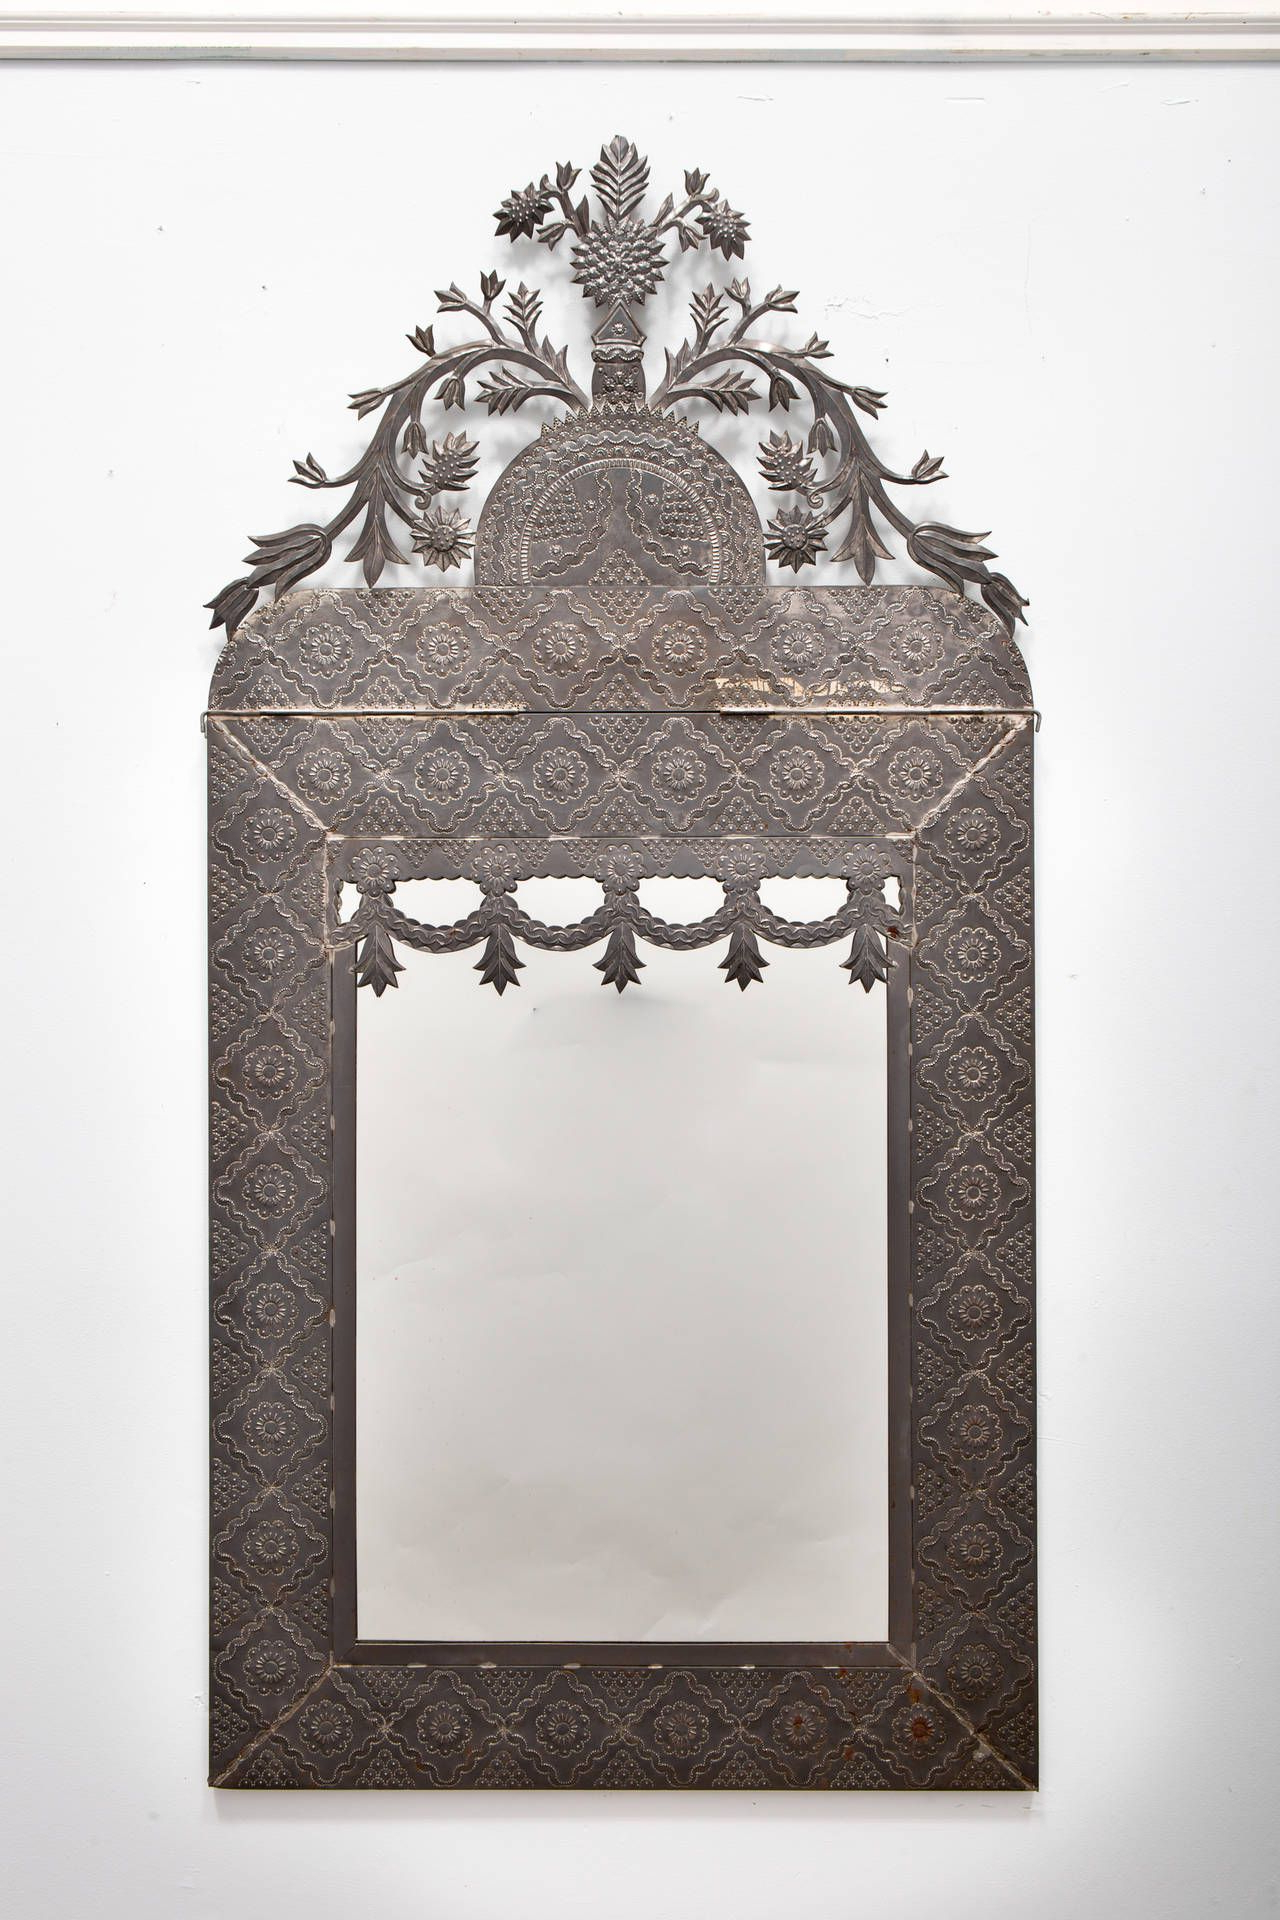 Decor, Furniture, Accessories Regarding Most Popular Mexican Wall Mirrors (View 11 of 20)